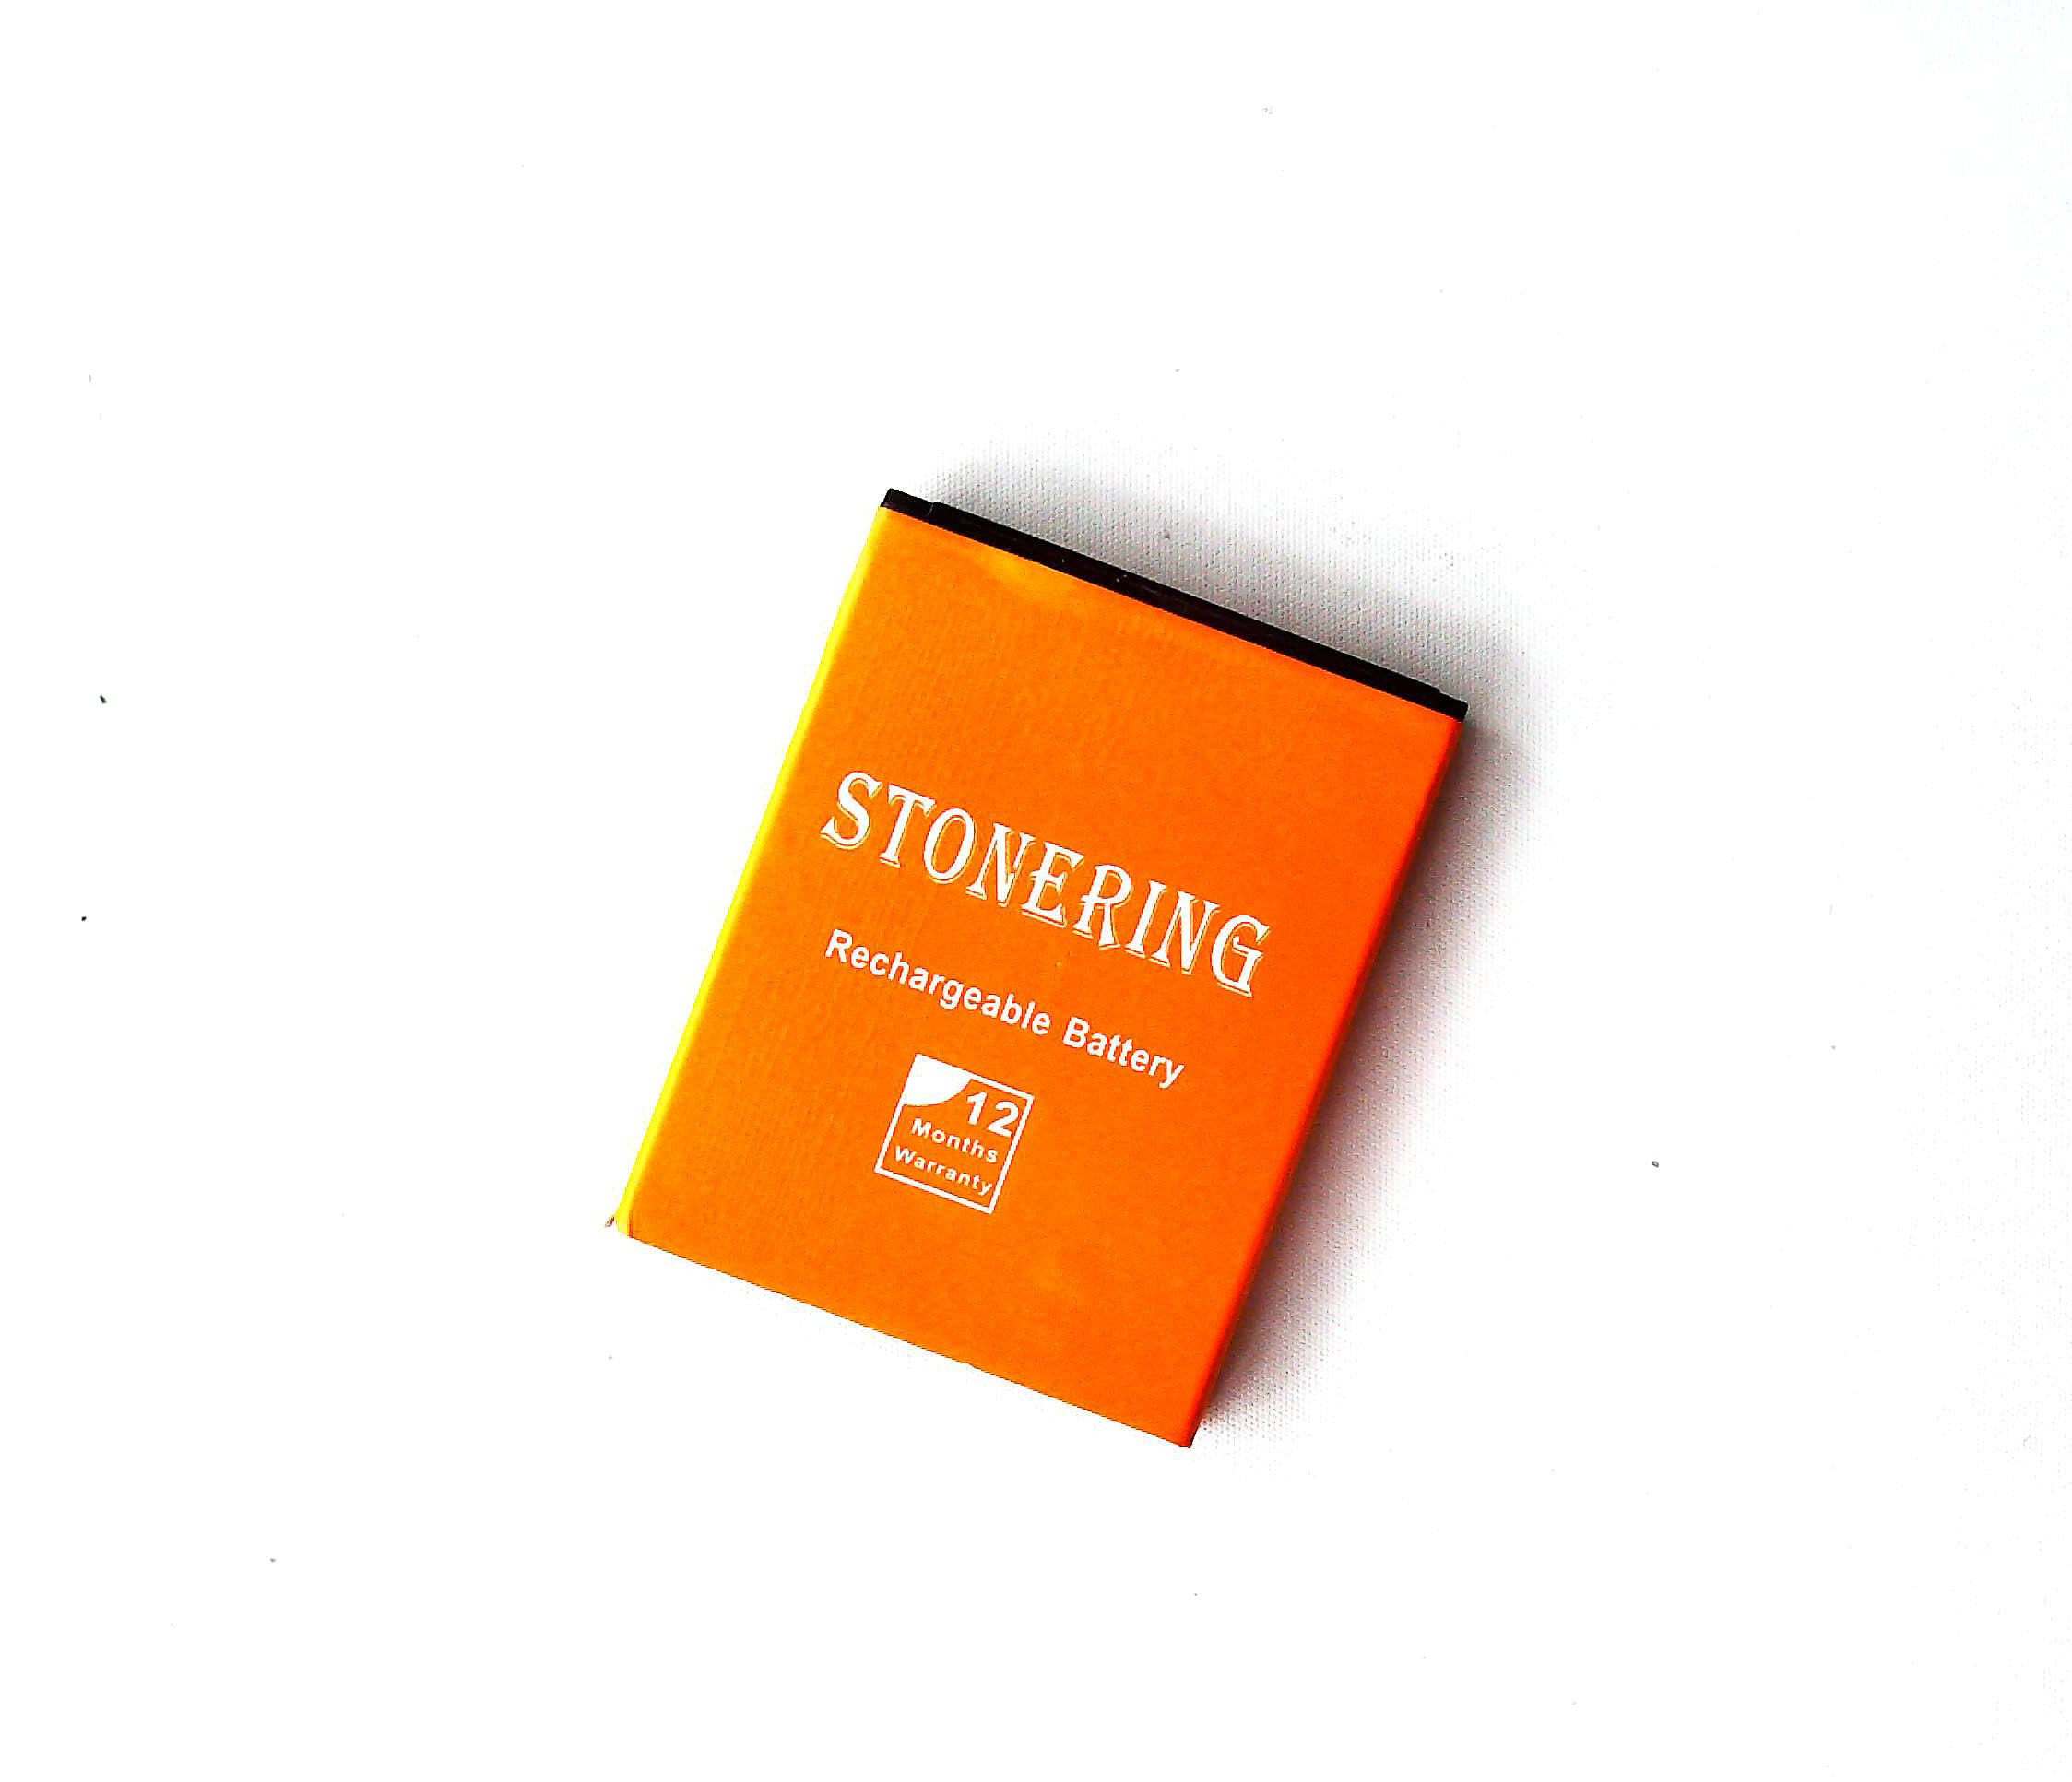 Stonering battery 1500mAh for <font><b>Alcatel</b></font> <font><b>one</b></font> <font><b>touch</b></font> 4033D 4032D POP C3 Pixi <font><b>4007D</b></font> BY71 PIXI 2 4014D cell phone image